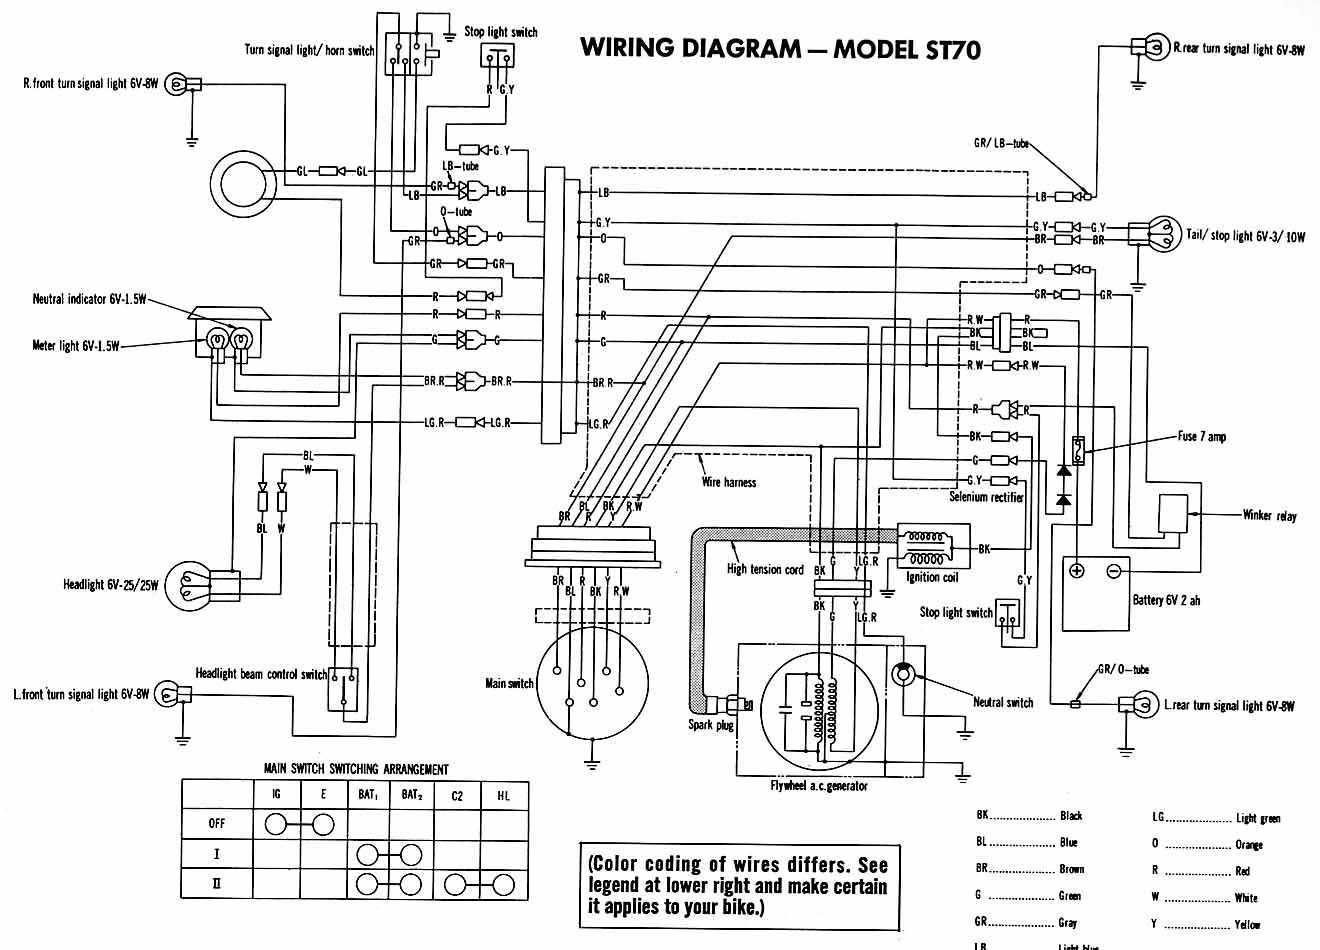 honda st70 motorcycle wiring diagram all about wiring. Black Bedroom Furniture Sets. Home Design Ideas